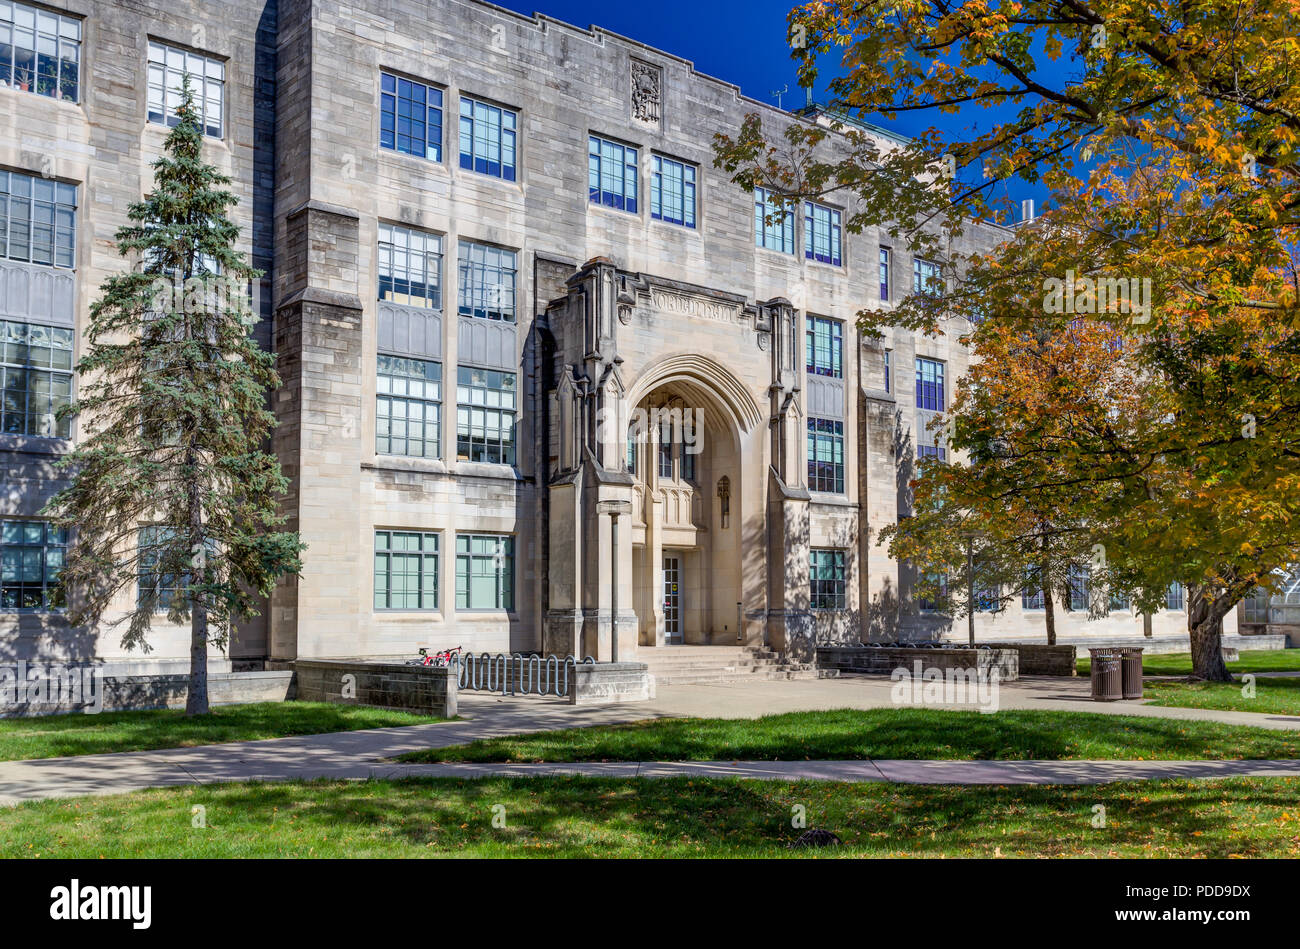 BLOOMINGTON, IN/USA - OCTOBER 22, 2017: College Science Building and Jordan Hall on the campus of the University of Indiana. - Stock Image